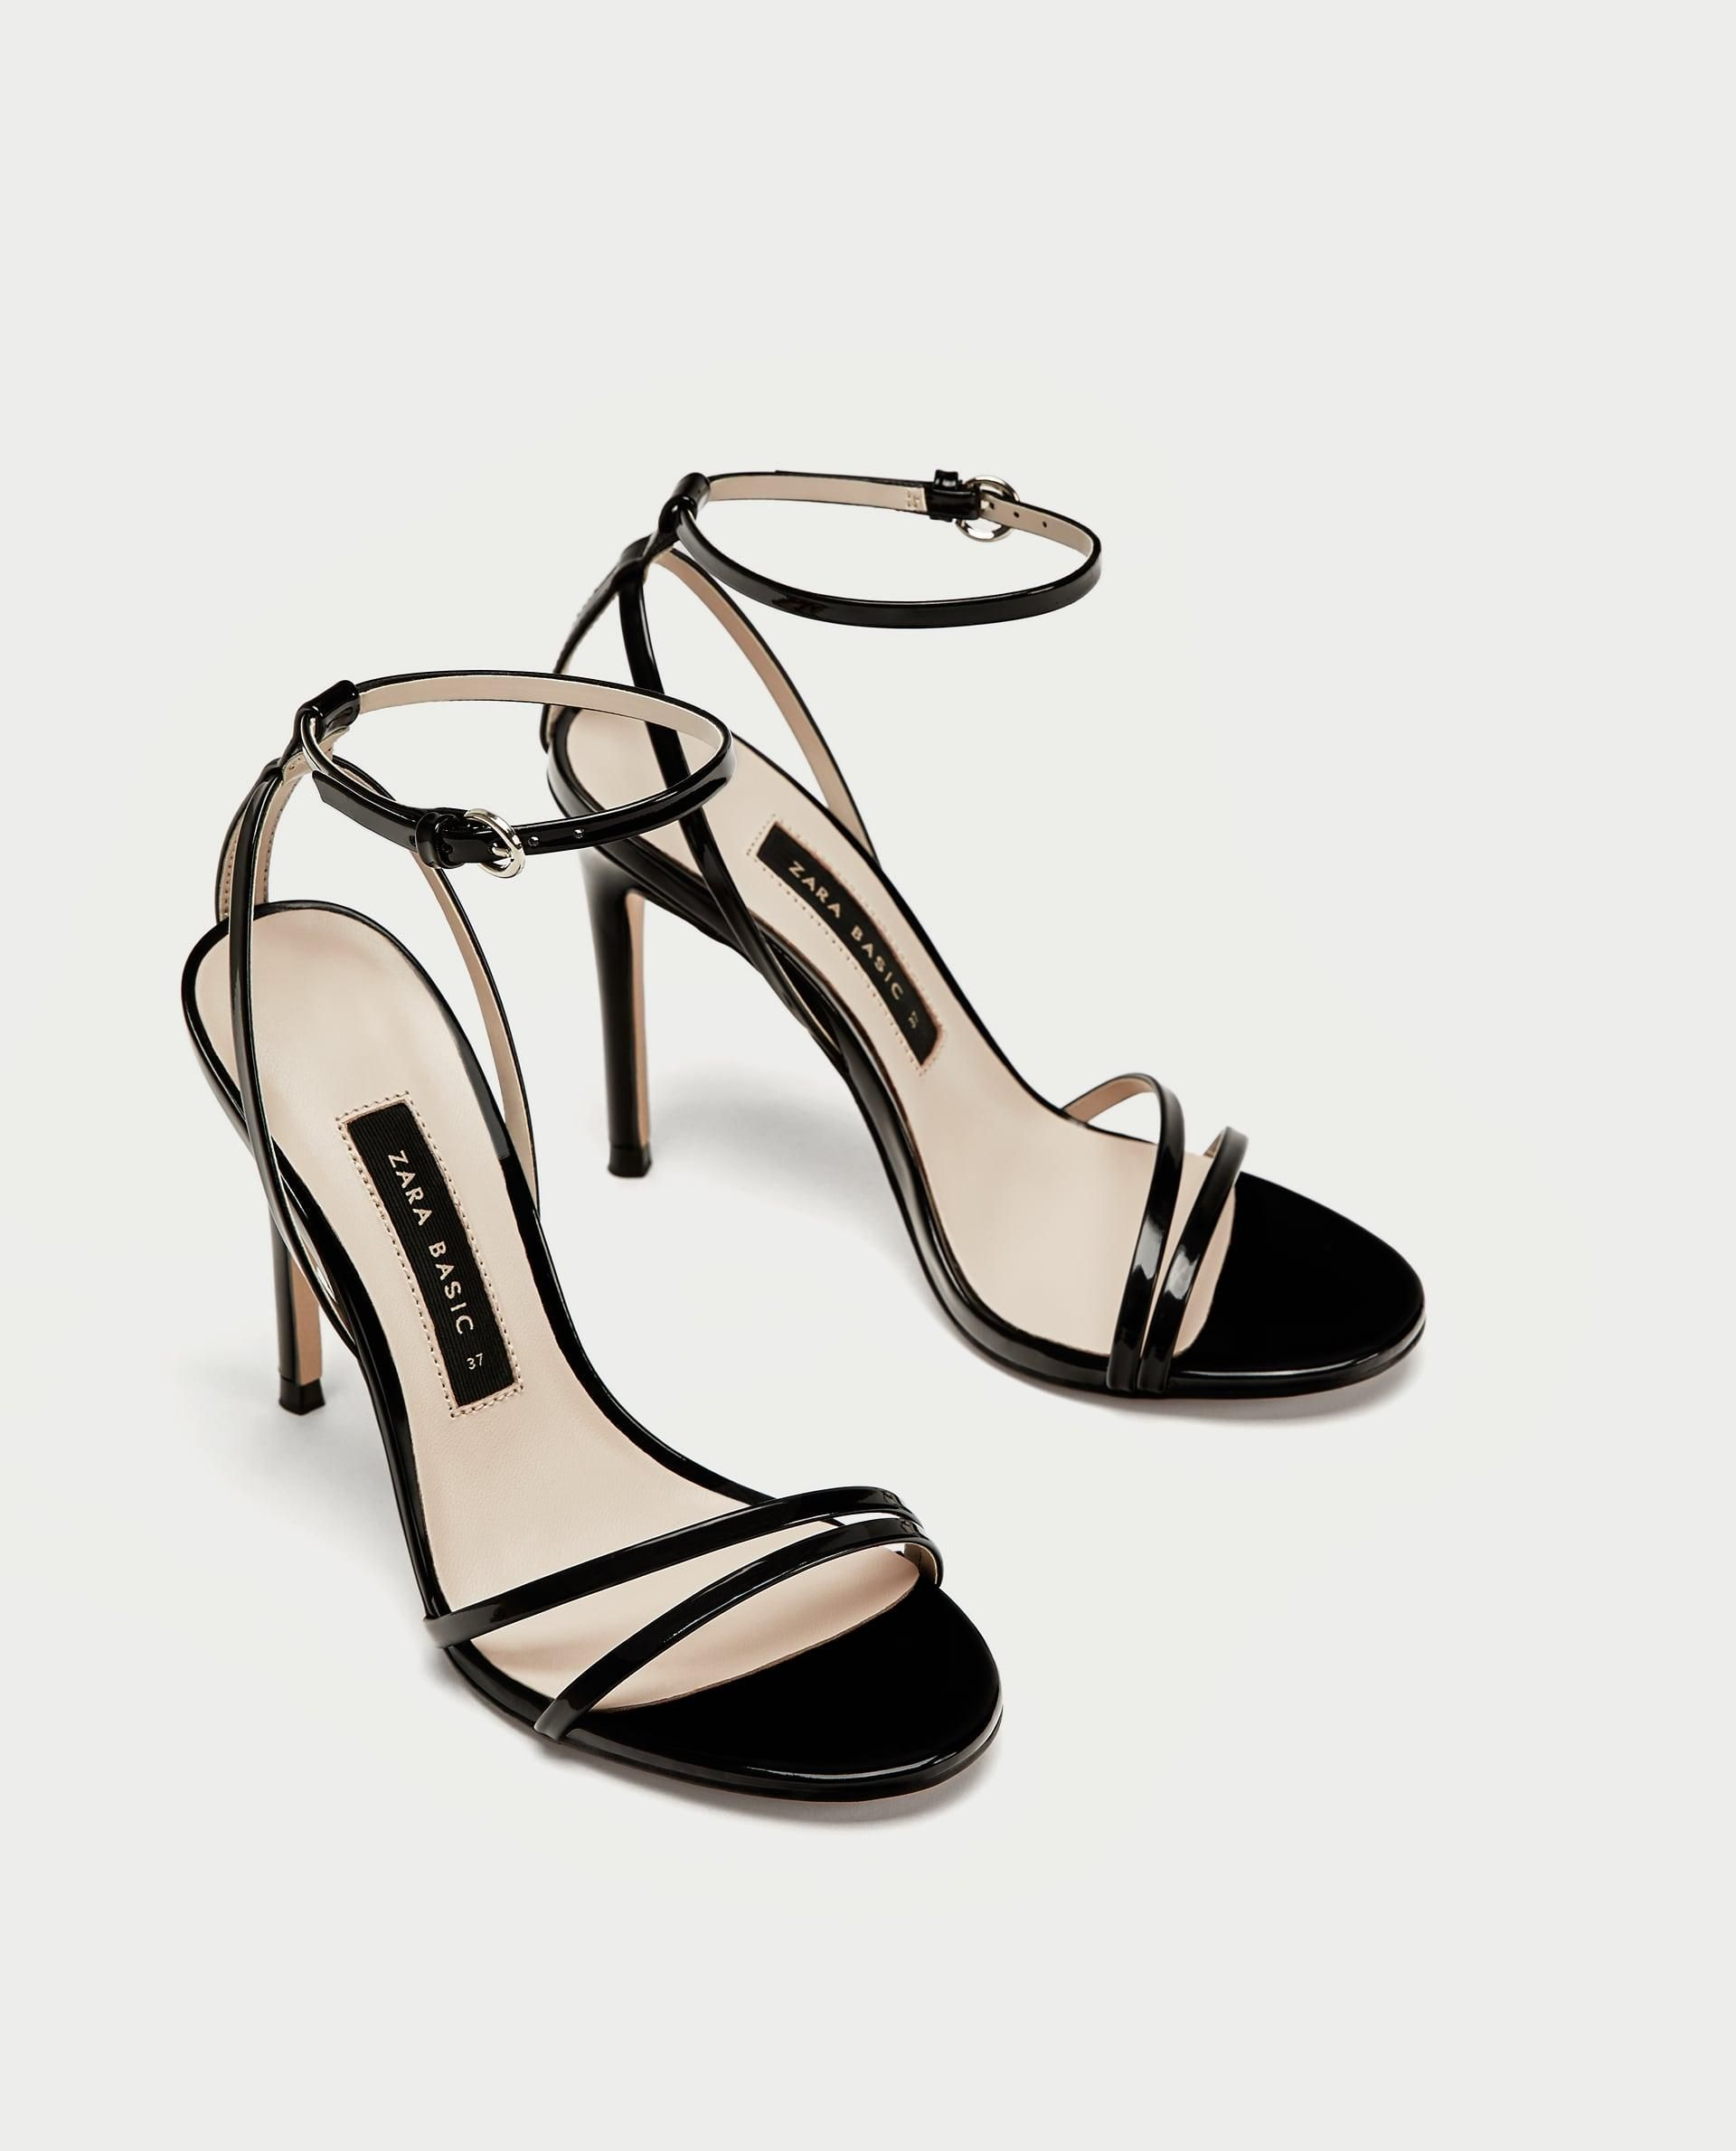 dd6650bec1 Patent Leather Sandals With Straps // 49.90 USD // Zara // Black faux  patent leather sandals. Two thins straps across the toe. Buckled ankle  straps.